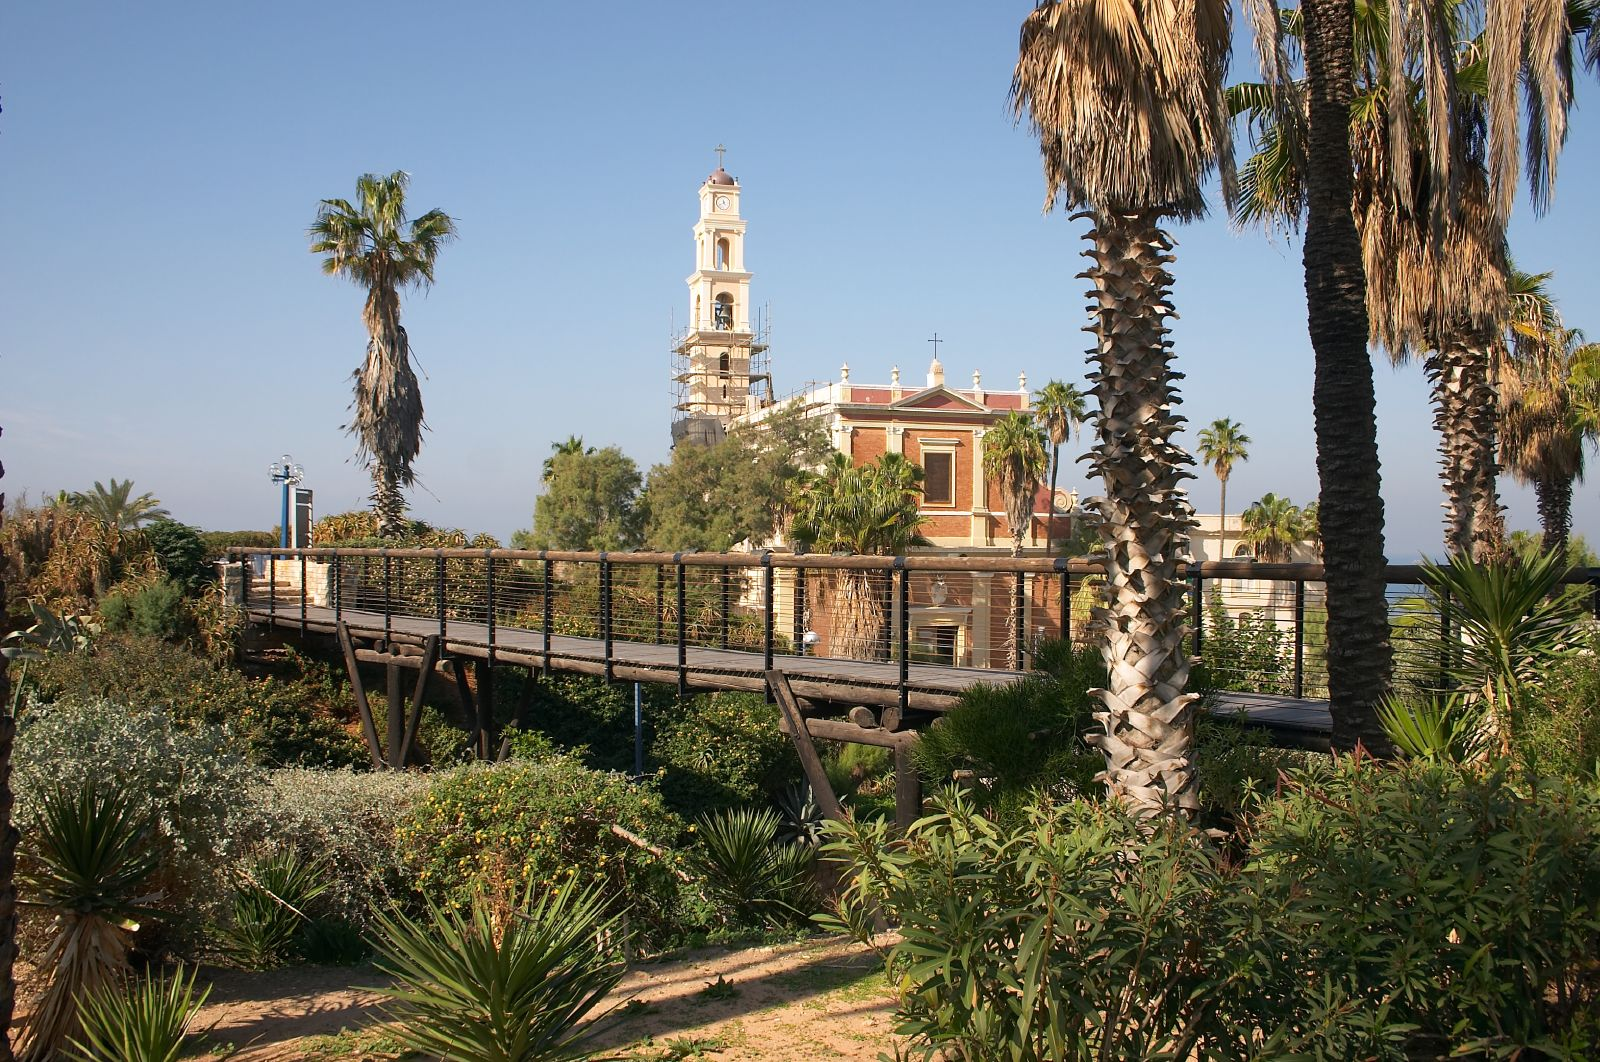 Jaffa - يافا : General view to Jaffa's St. Peter's church and the park around it